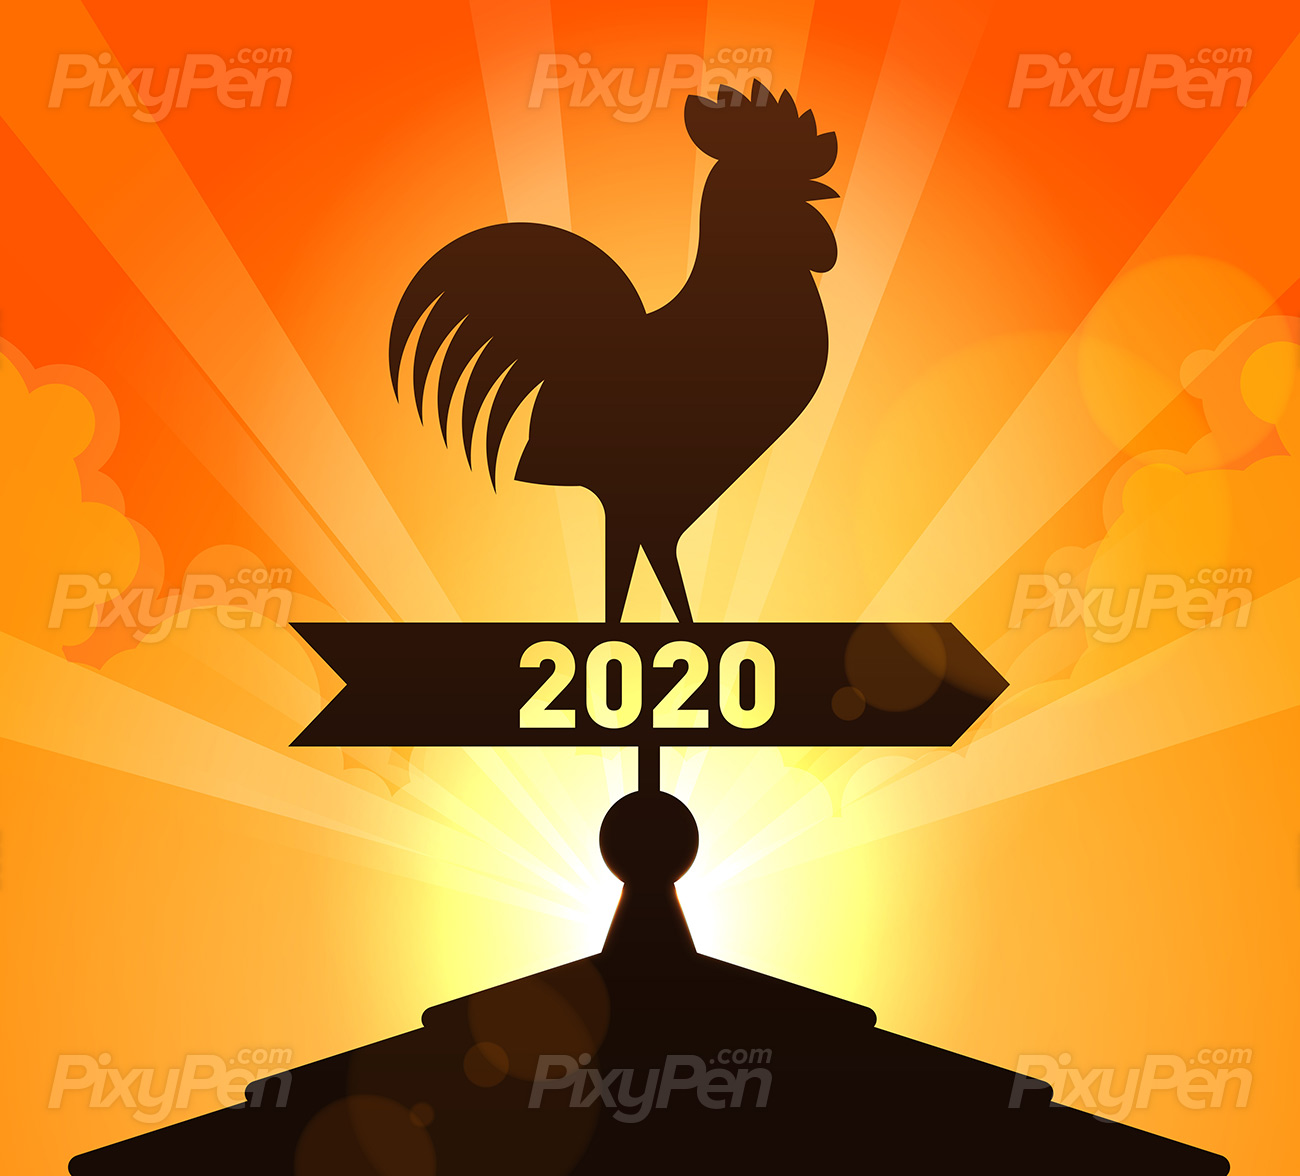 New Year 2020 is coming soon   Vector Illustration PixyPen 1300x1176